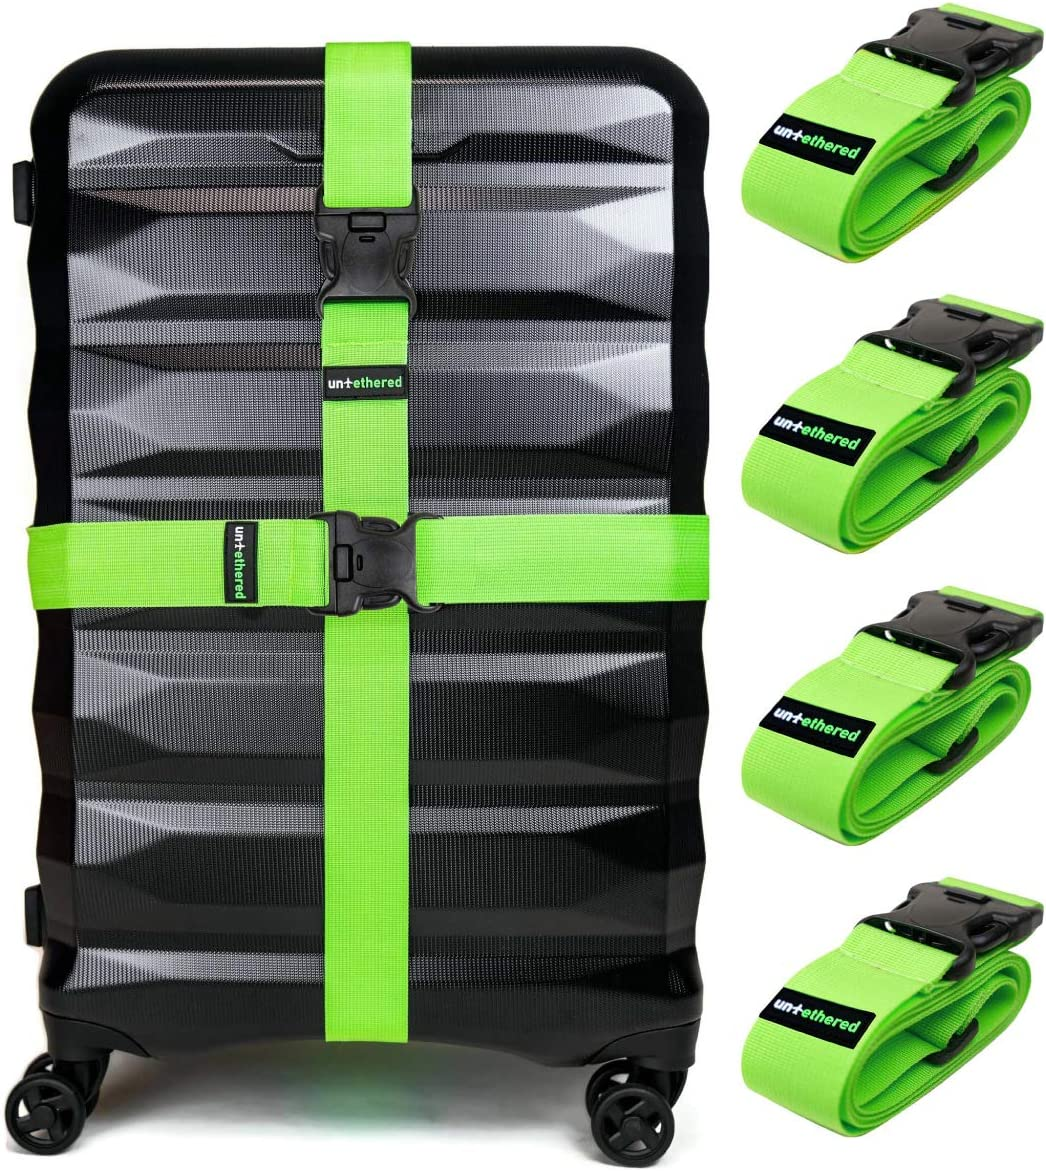 Untethered Luggage Straps (4-Pack)